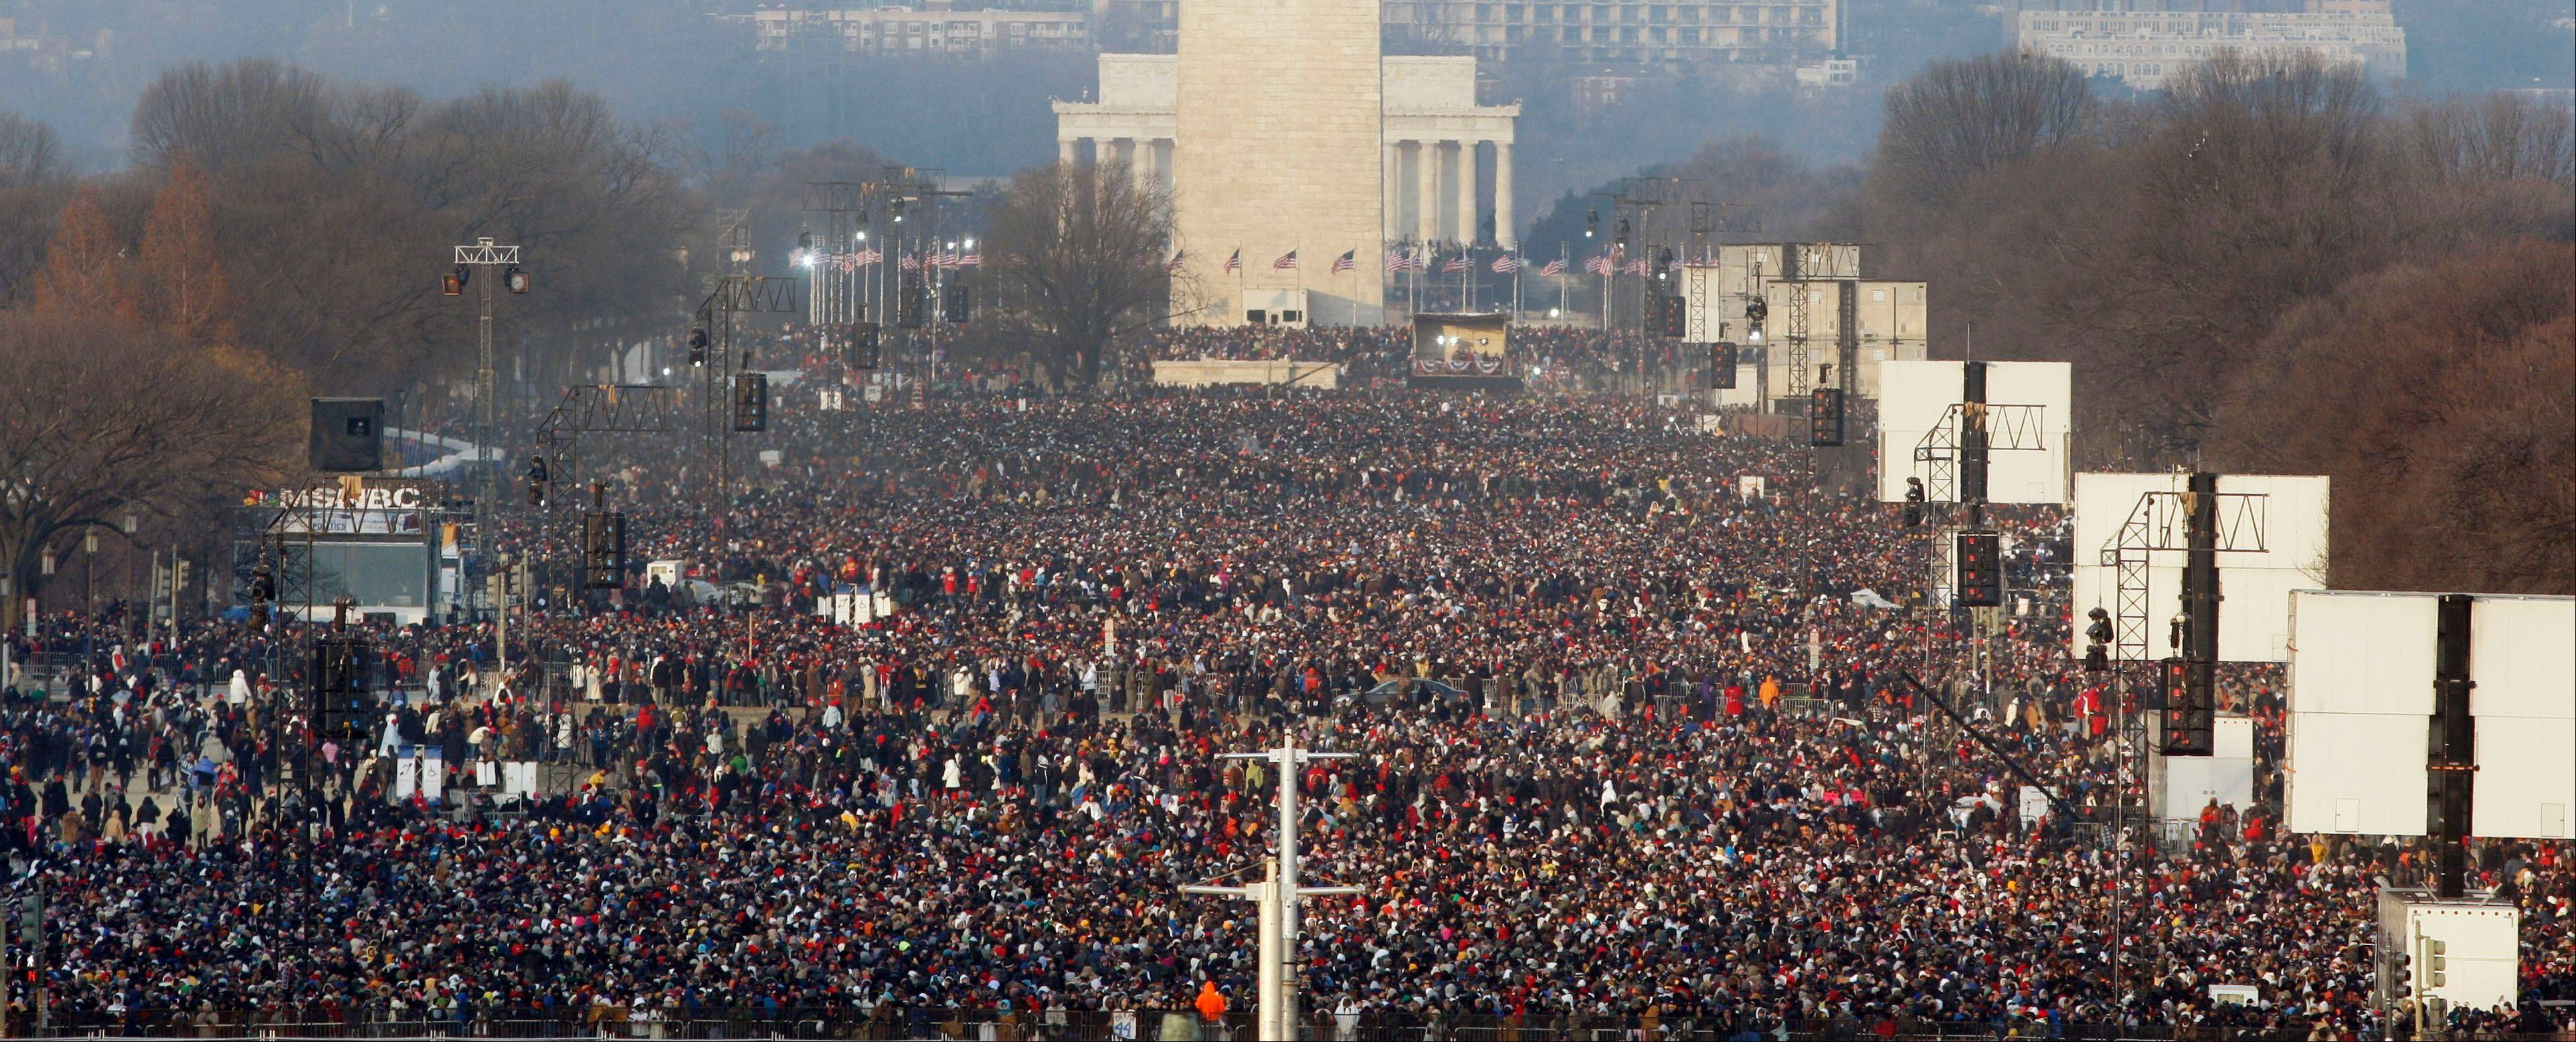 This Jan. 20, 2009, file photo shows the crowd on the National Mall in Washington for the swearing-in ceremony of President-elect Barack Obama. Four years and one re-election after Obama became America's first black president, some of the thrill is gone. Yes, the inauguration of a U.S. president is still a big deal.